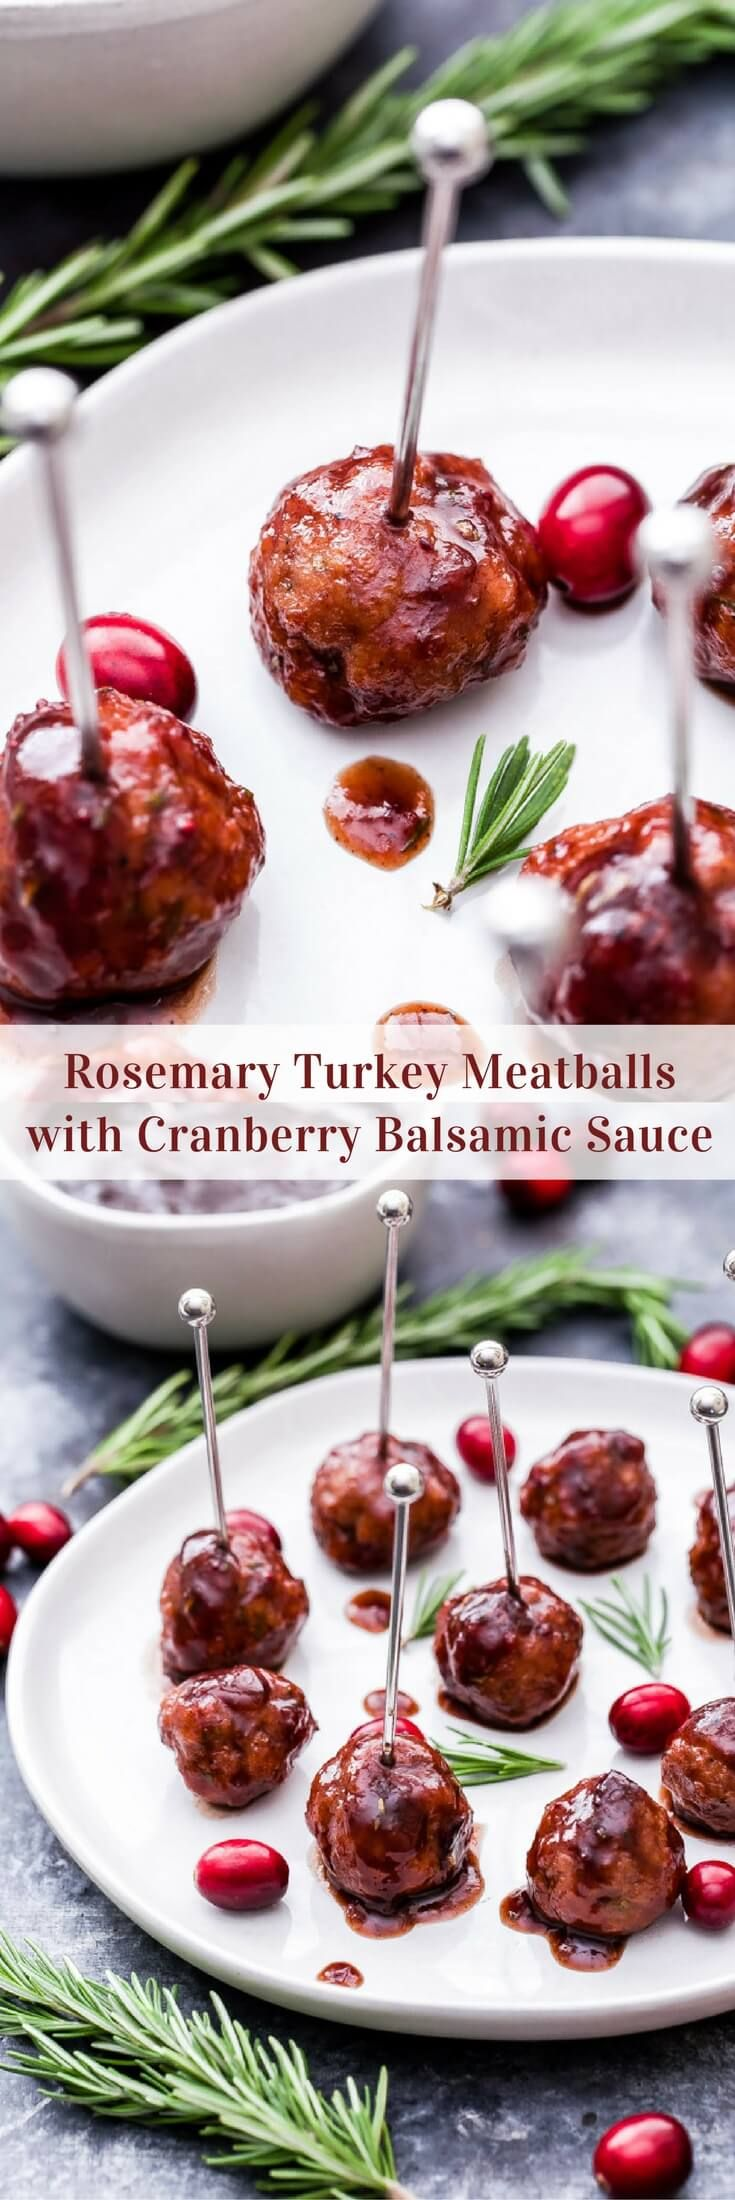 Use Amethyst and silver party picks.   Every party needs a good meatball and these Rosemary Turkey Meatballs with Cranberry Balsamic Sauce are sure to be a crowd pleaser this holiday season!